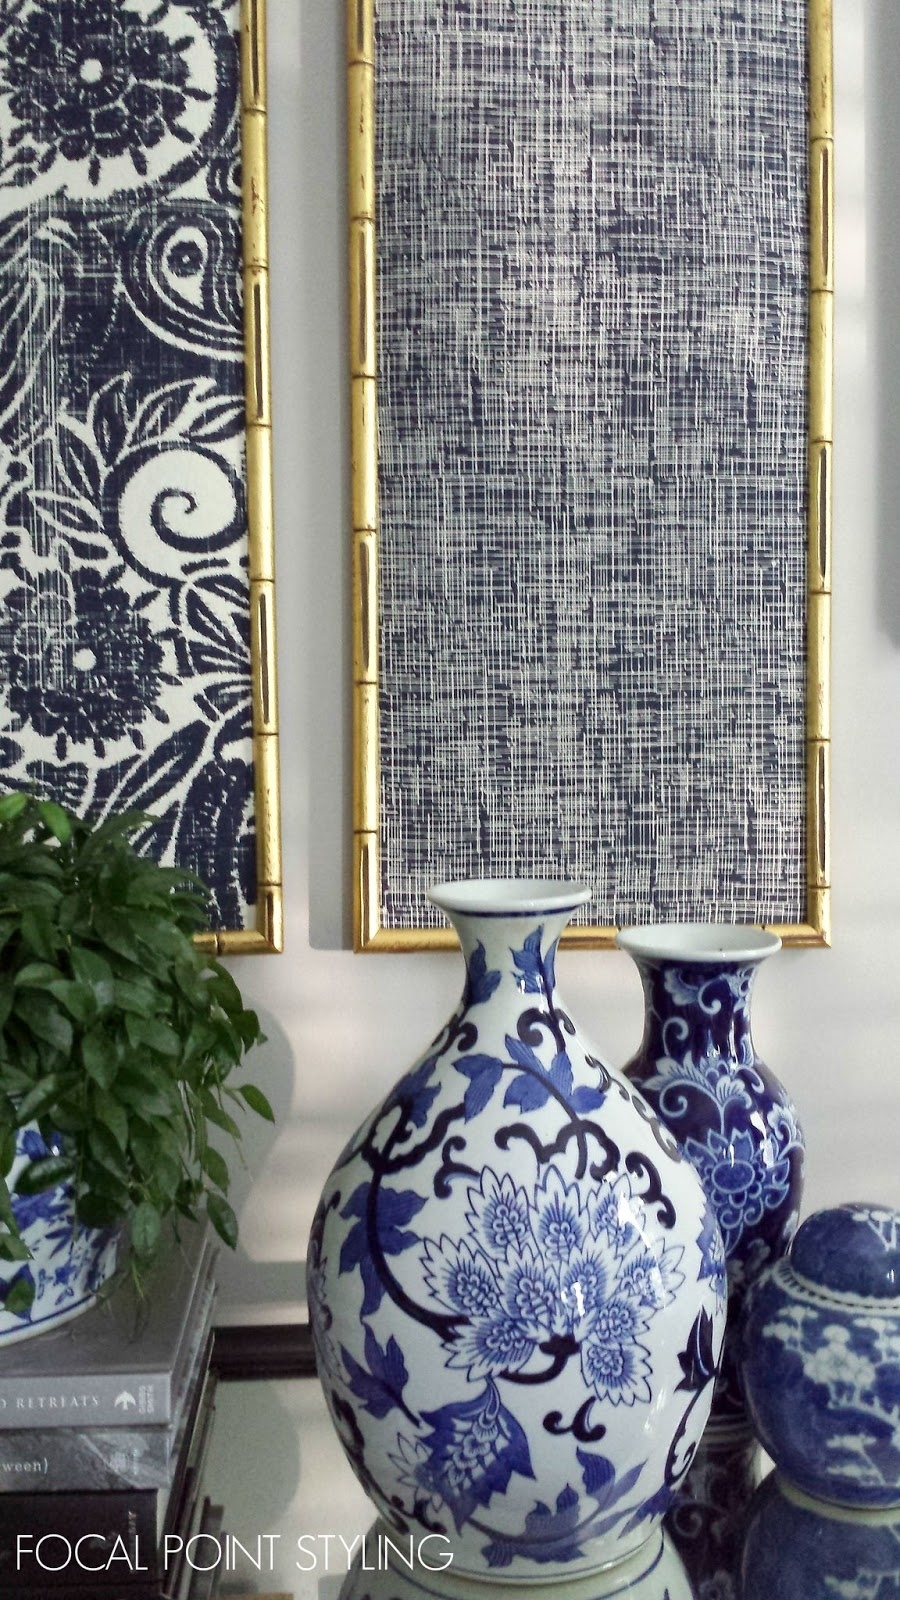 Focal Point Styling: Diy Indigo Wall Art With Framed Fabric Within Best And Newest Blue Fabric Wall Art (View 7 of 15)